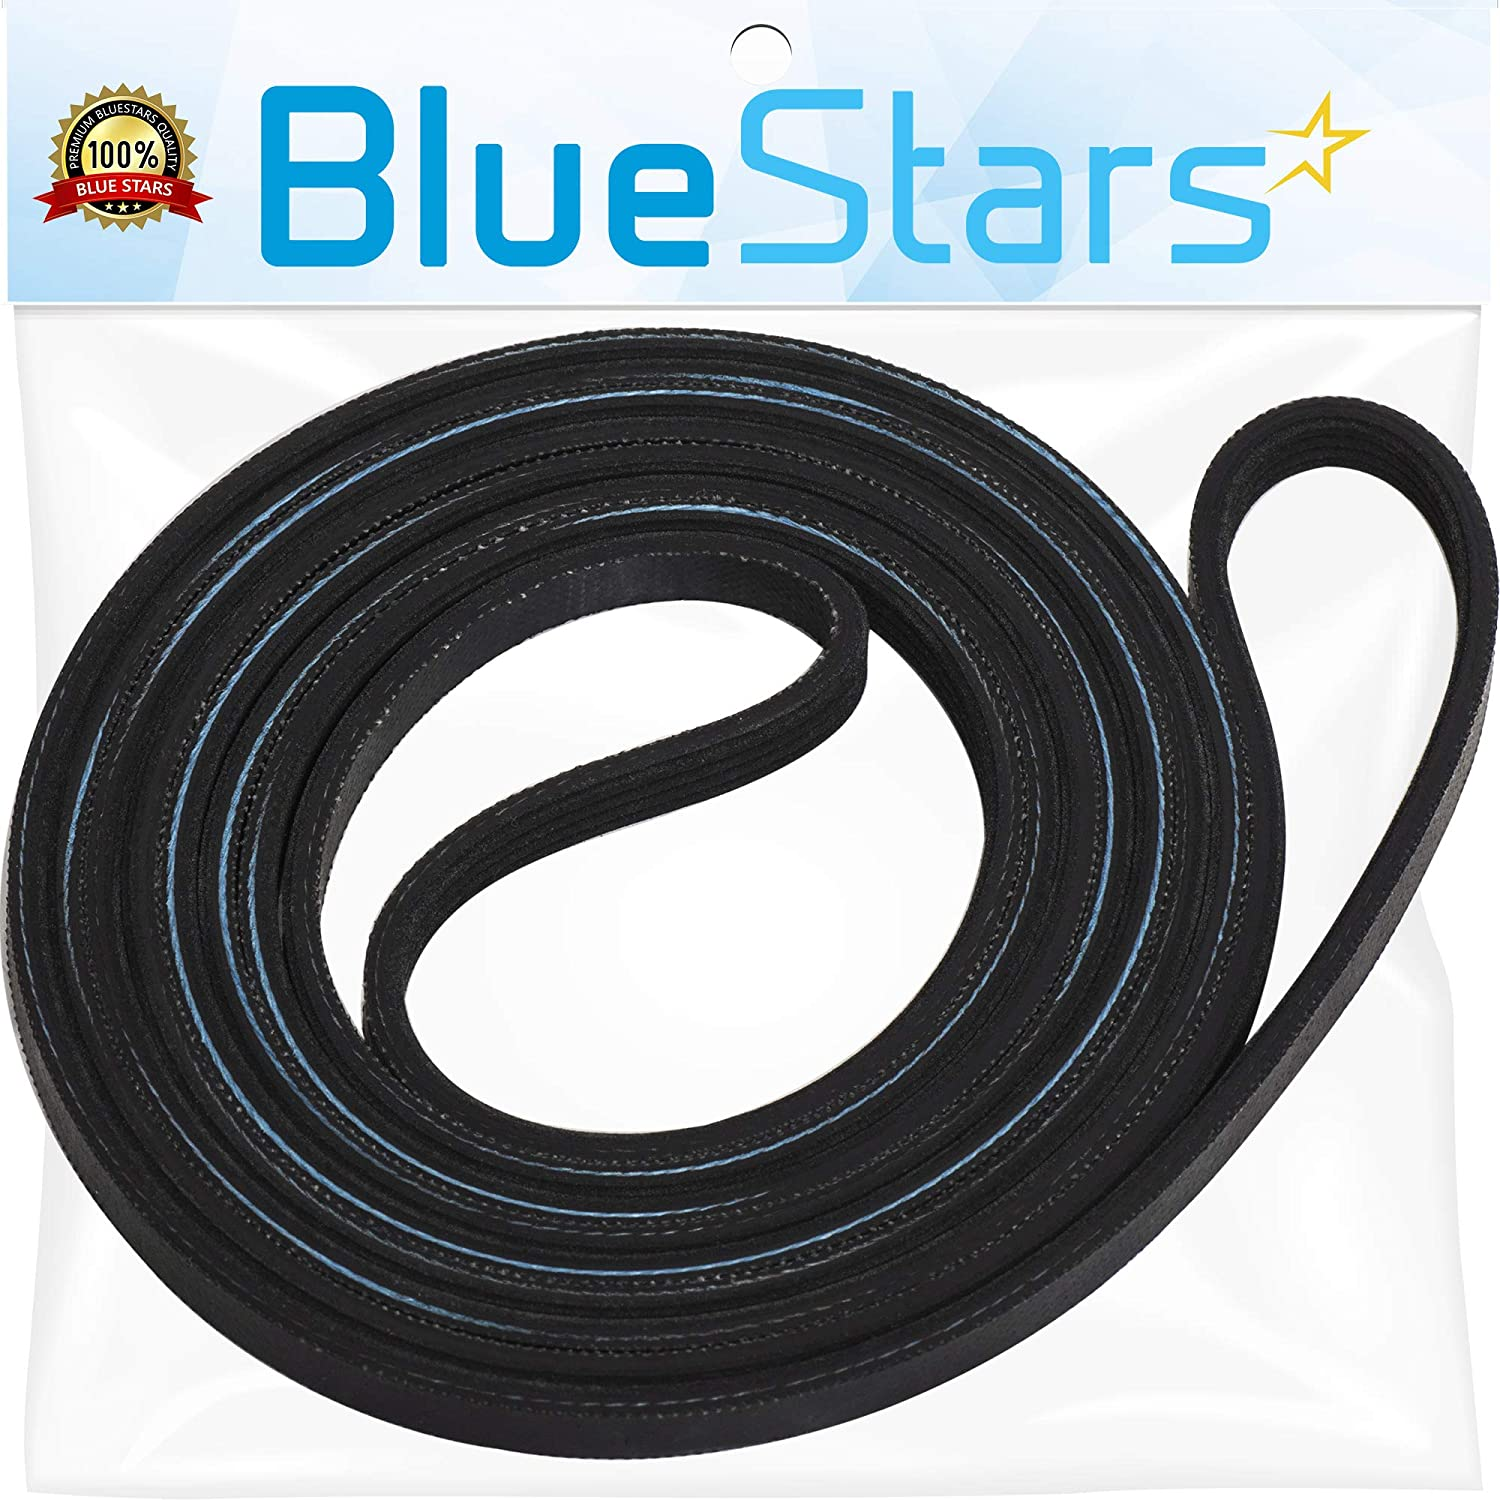 Ultra Durable 8547157 Dryer Drum Belt Replacement Part by Blue Stars- Exact Fit for Whirlpool & Kenmore Dryers - Replaces WP8547157 PS11746374